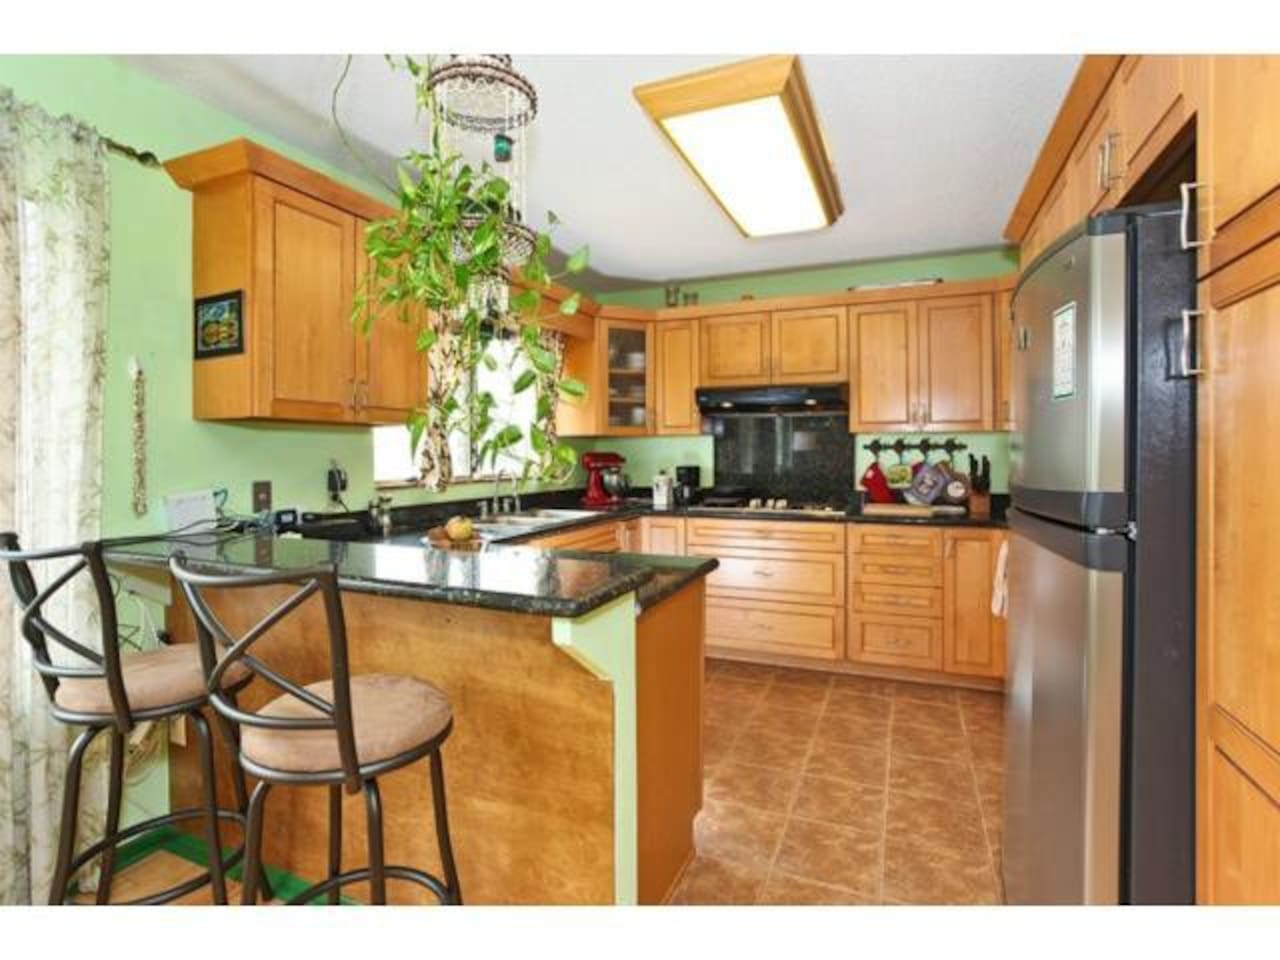 Professional Chef Kitchen with all the ammenities